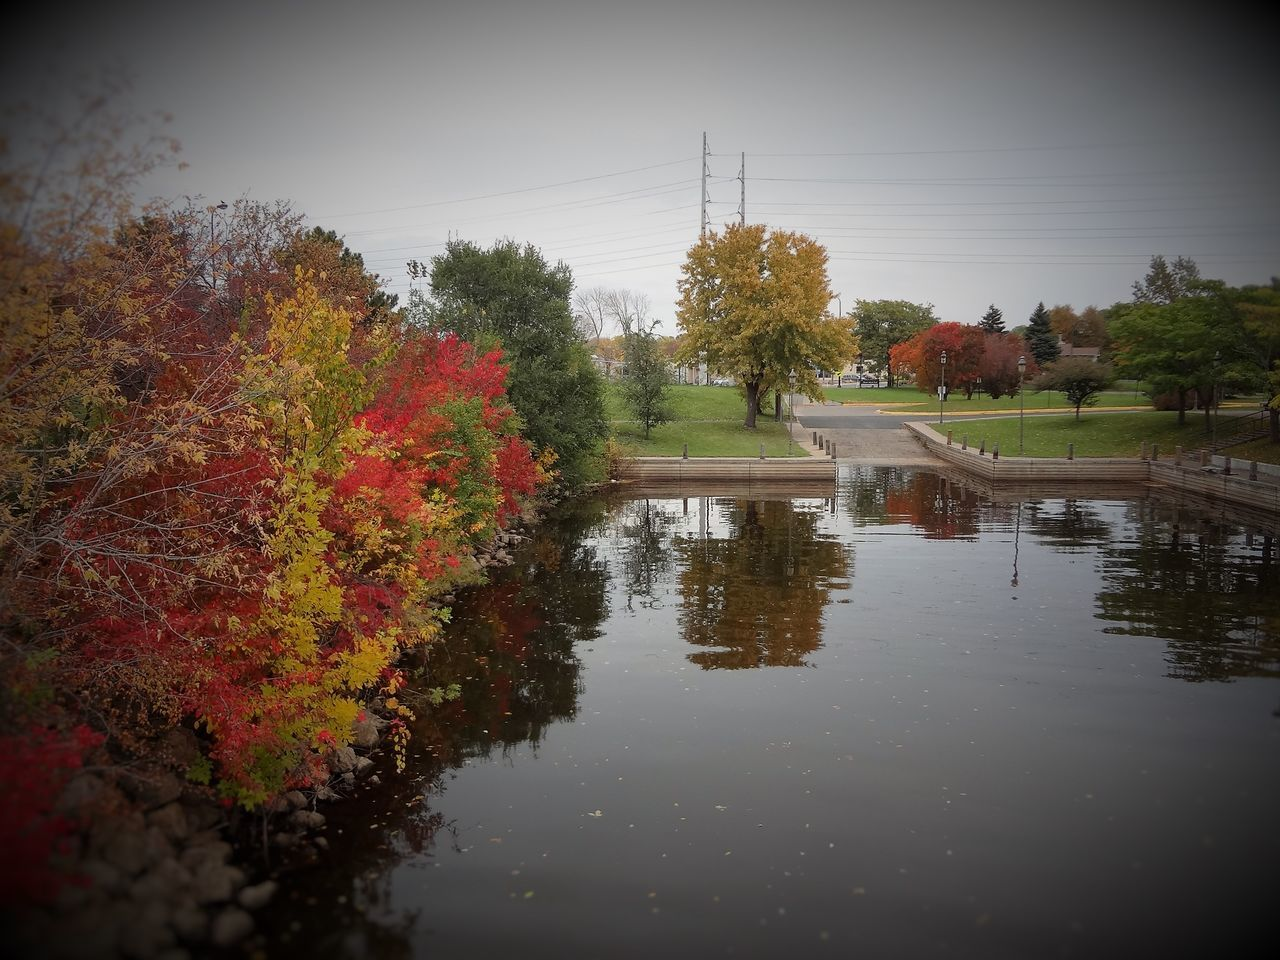 Boom Island, Northeast Minneapolis, MN. Beauty In Nature Day Fall Collection Fall Colors Fall Leaves Growth Nature No People Outdoors Reflection Reflesh Sky Tabphotography Tree Water Water Reflections